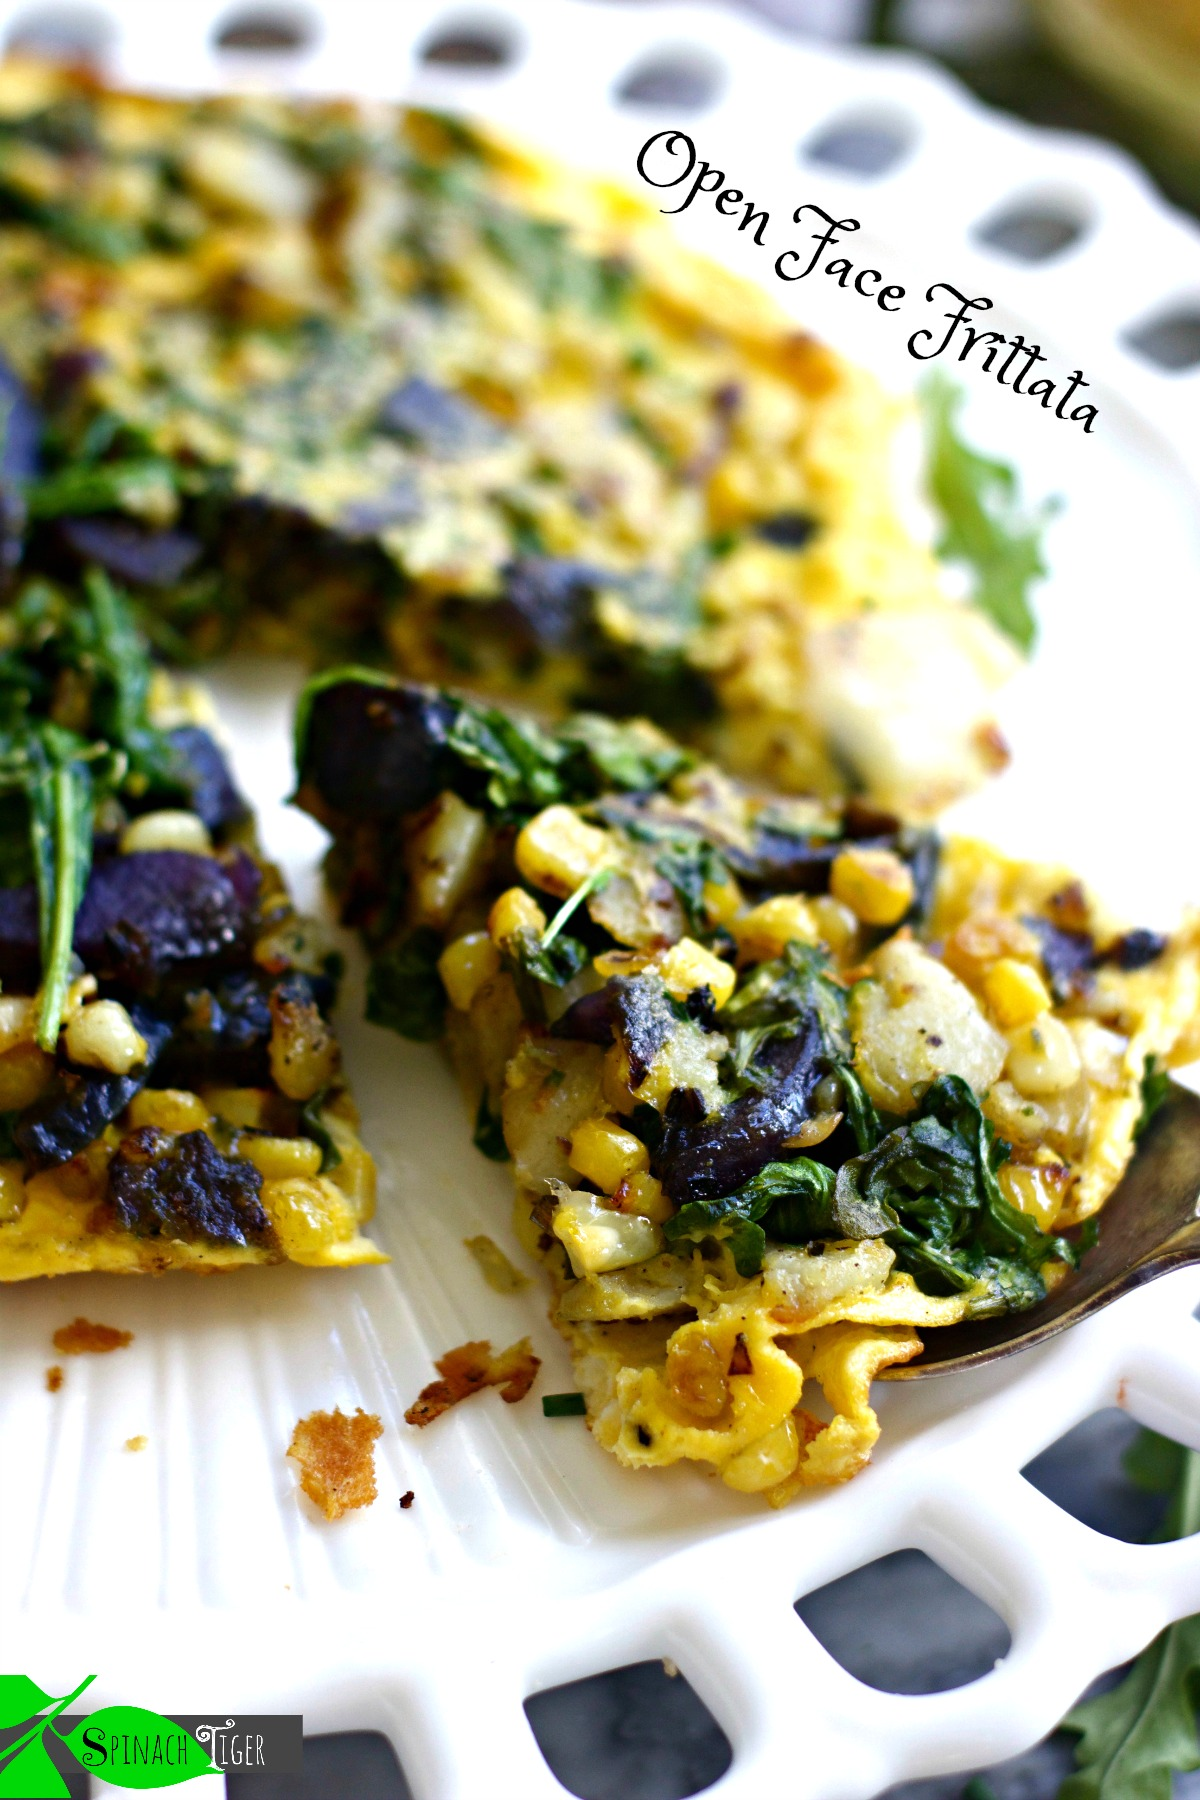 Open Face Frittata with Purple Potatoes from Spinach Tiger